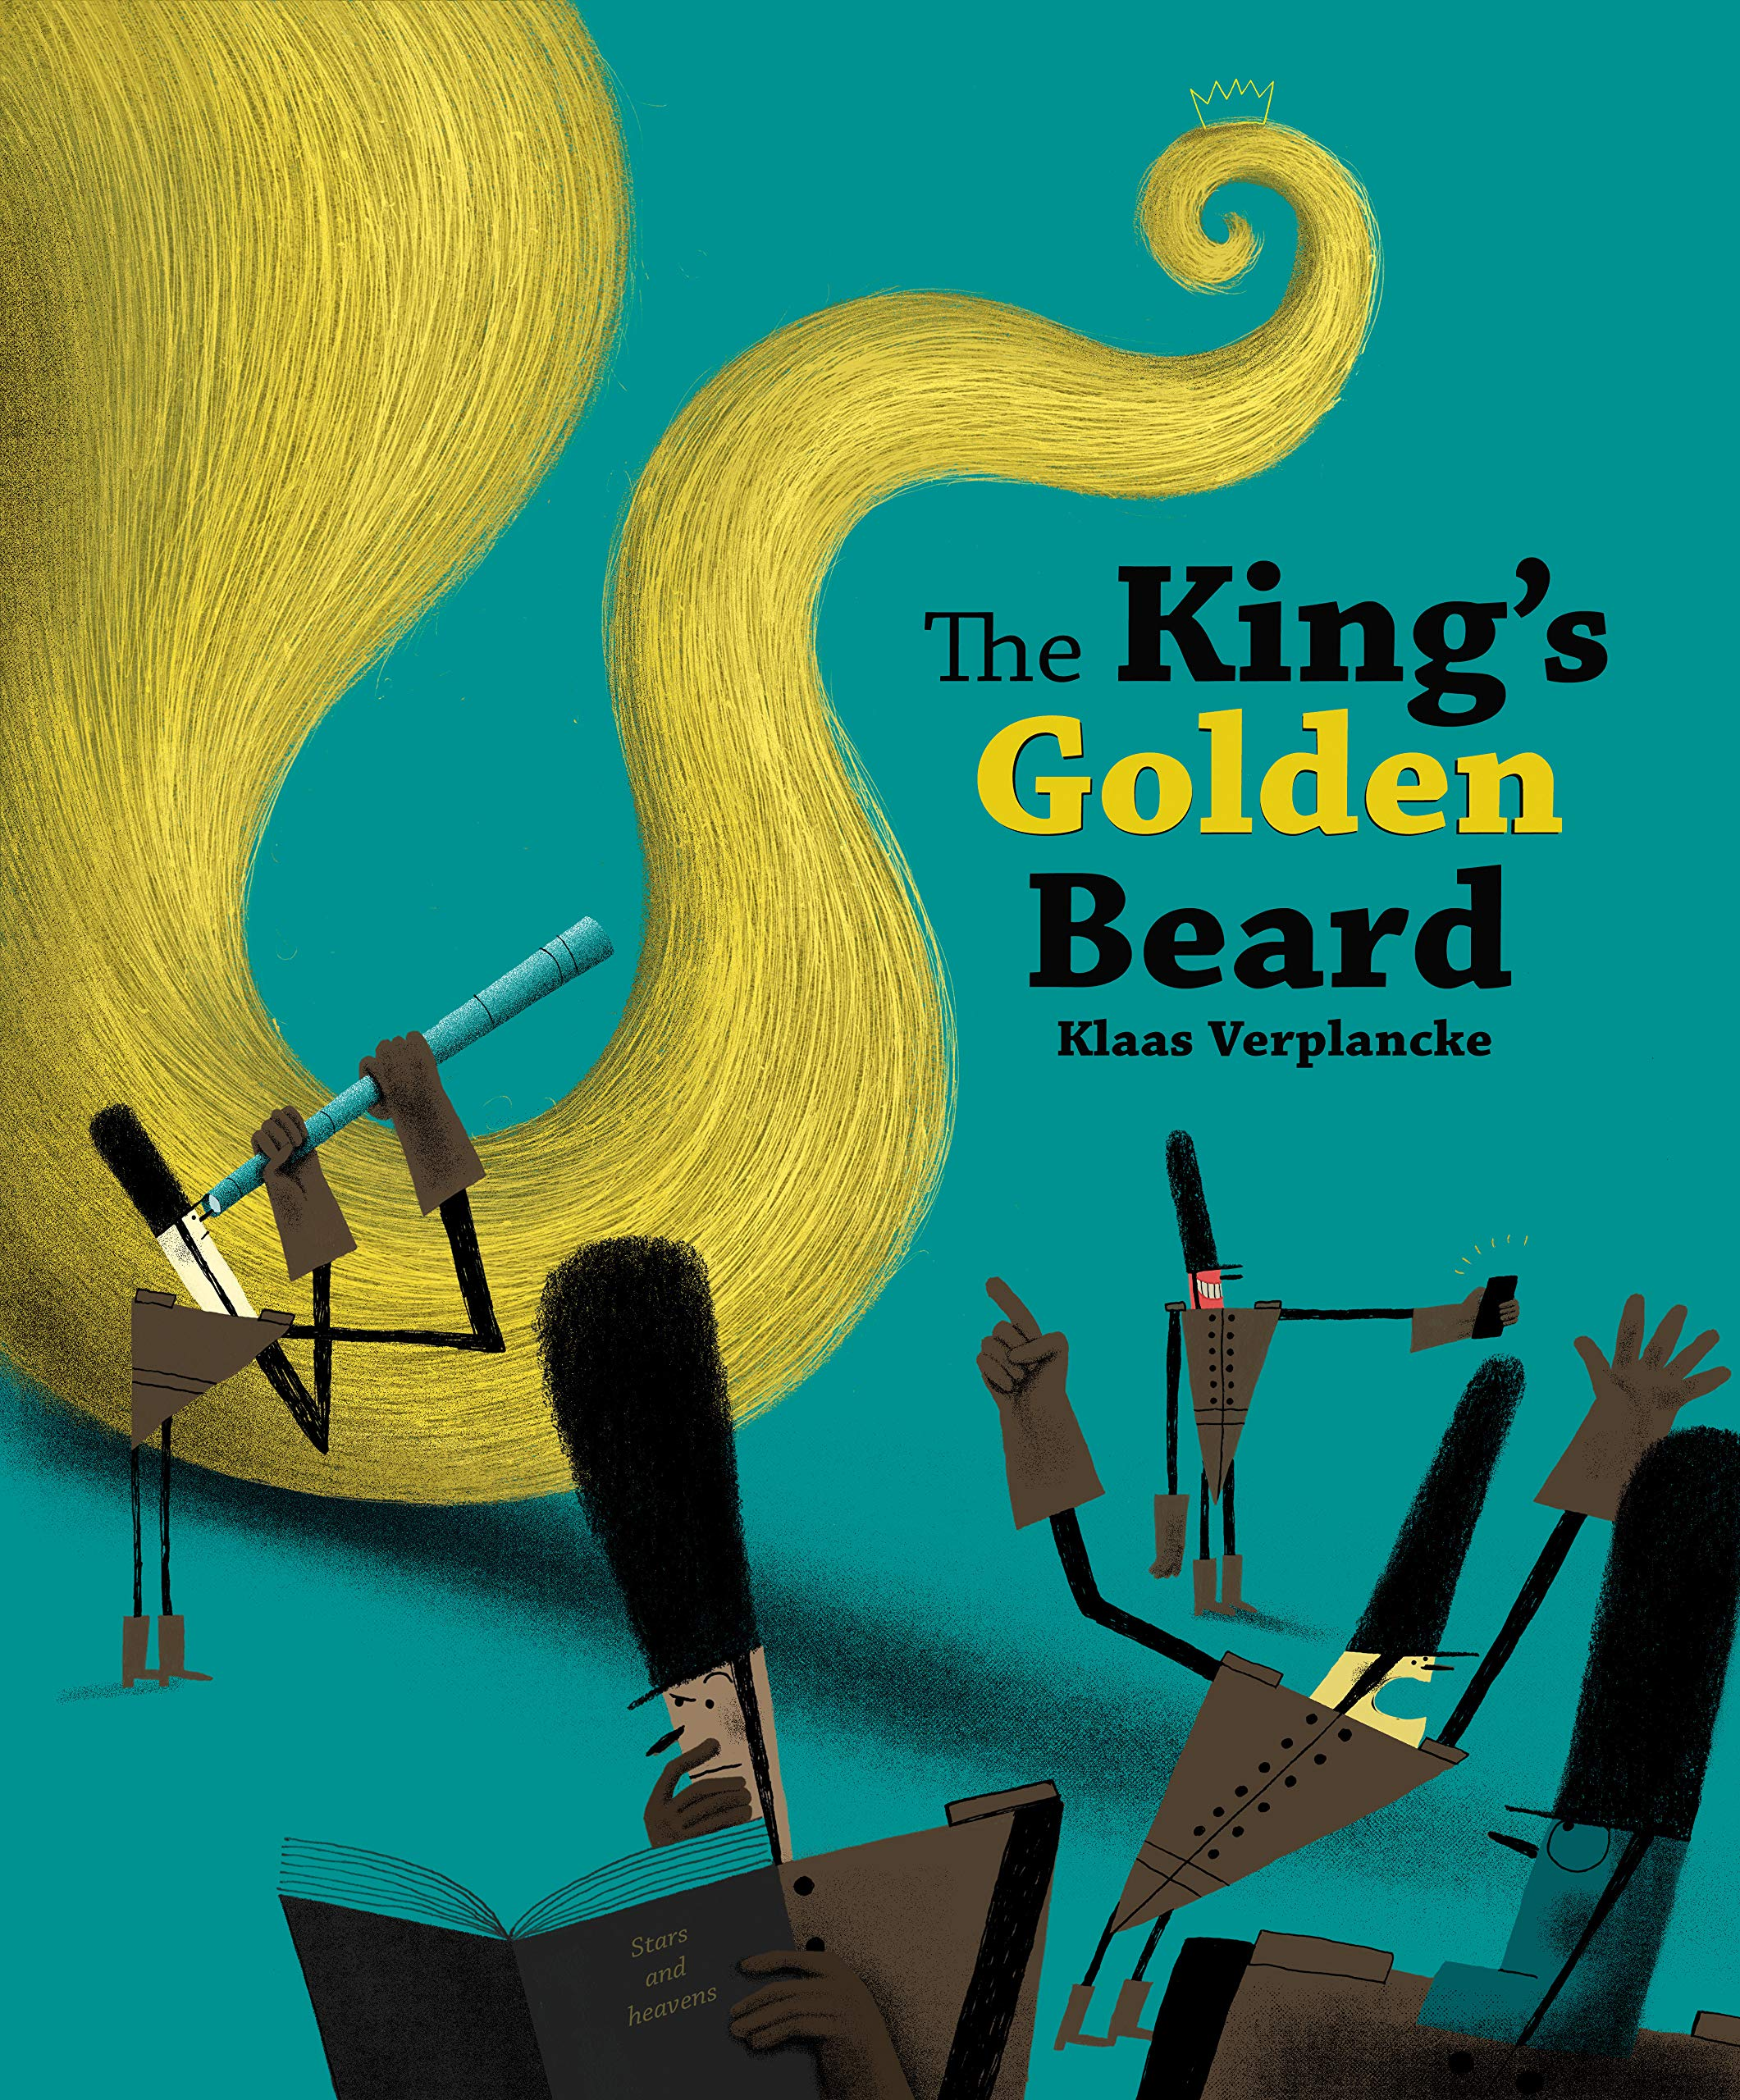 celebrate-picture-books-picture-book-review-the-king's-golden-beard-cover